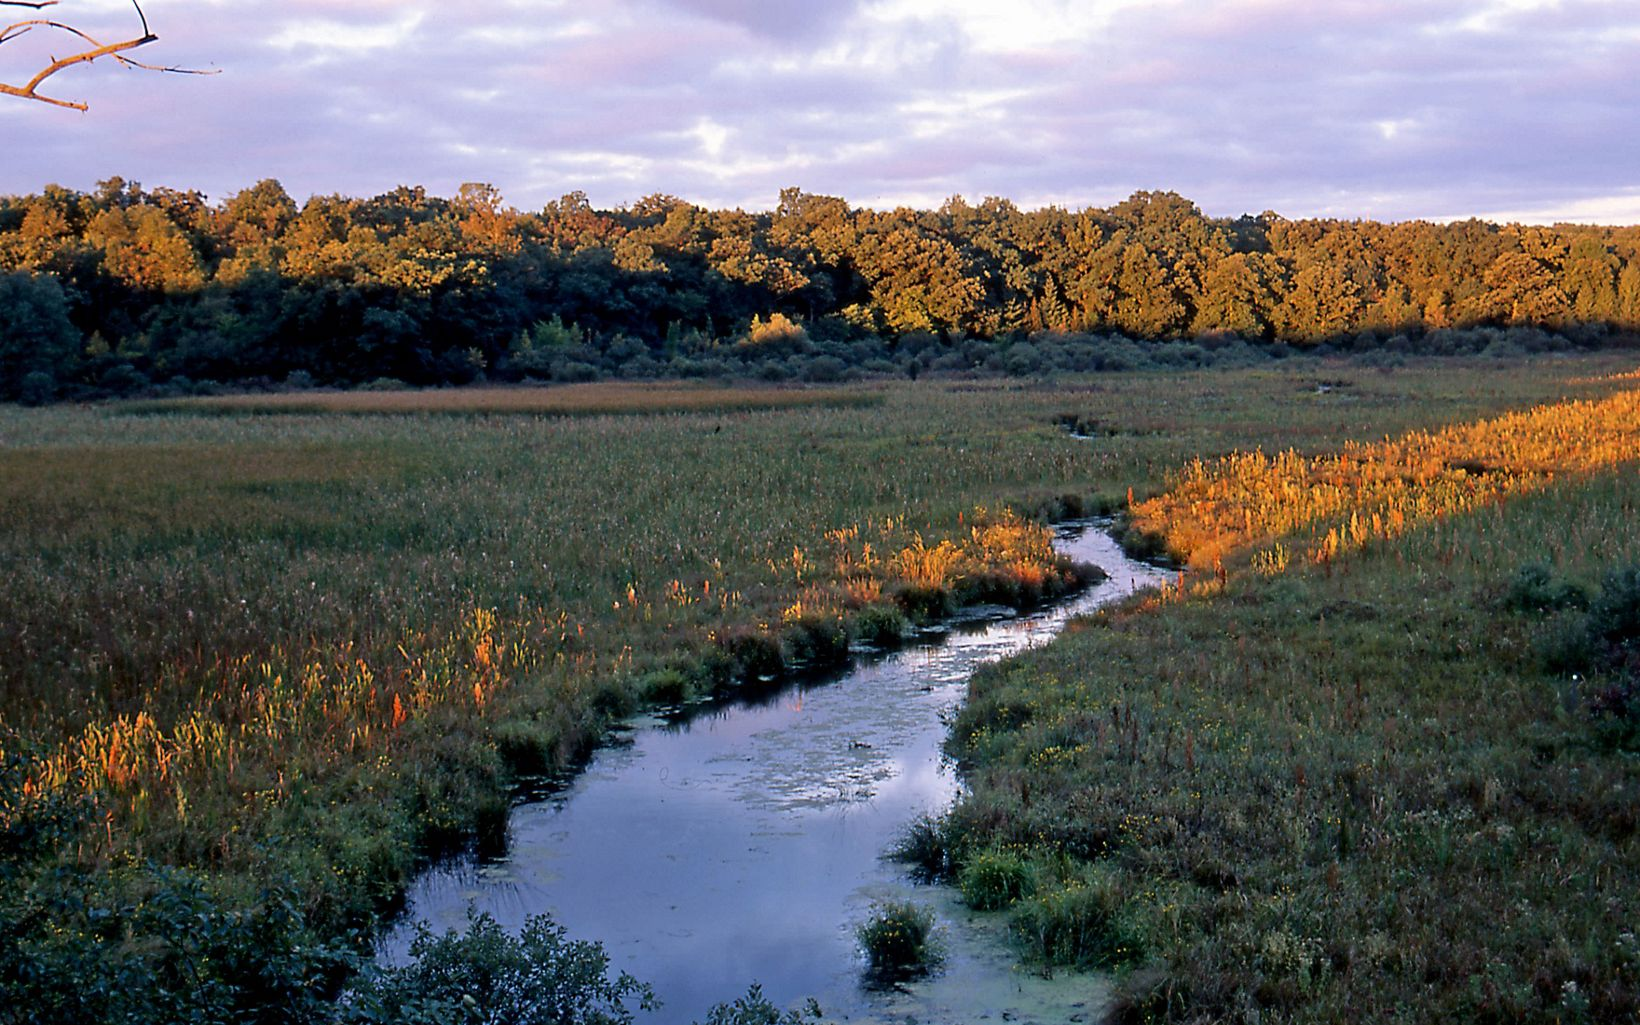 Crooked Creek winds its way through this preserve, which is also home to fens, bogs, prairies and oak woodlands.